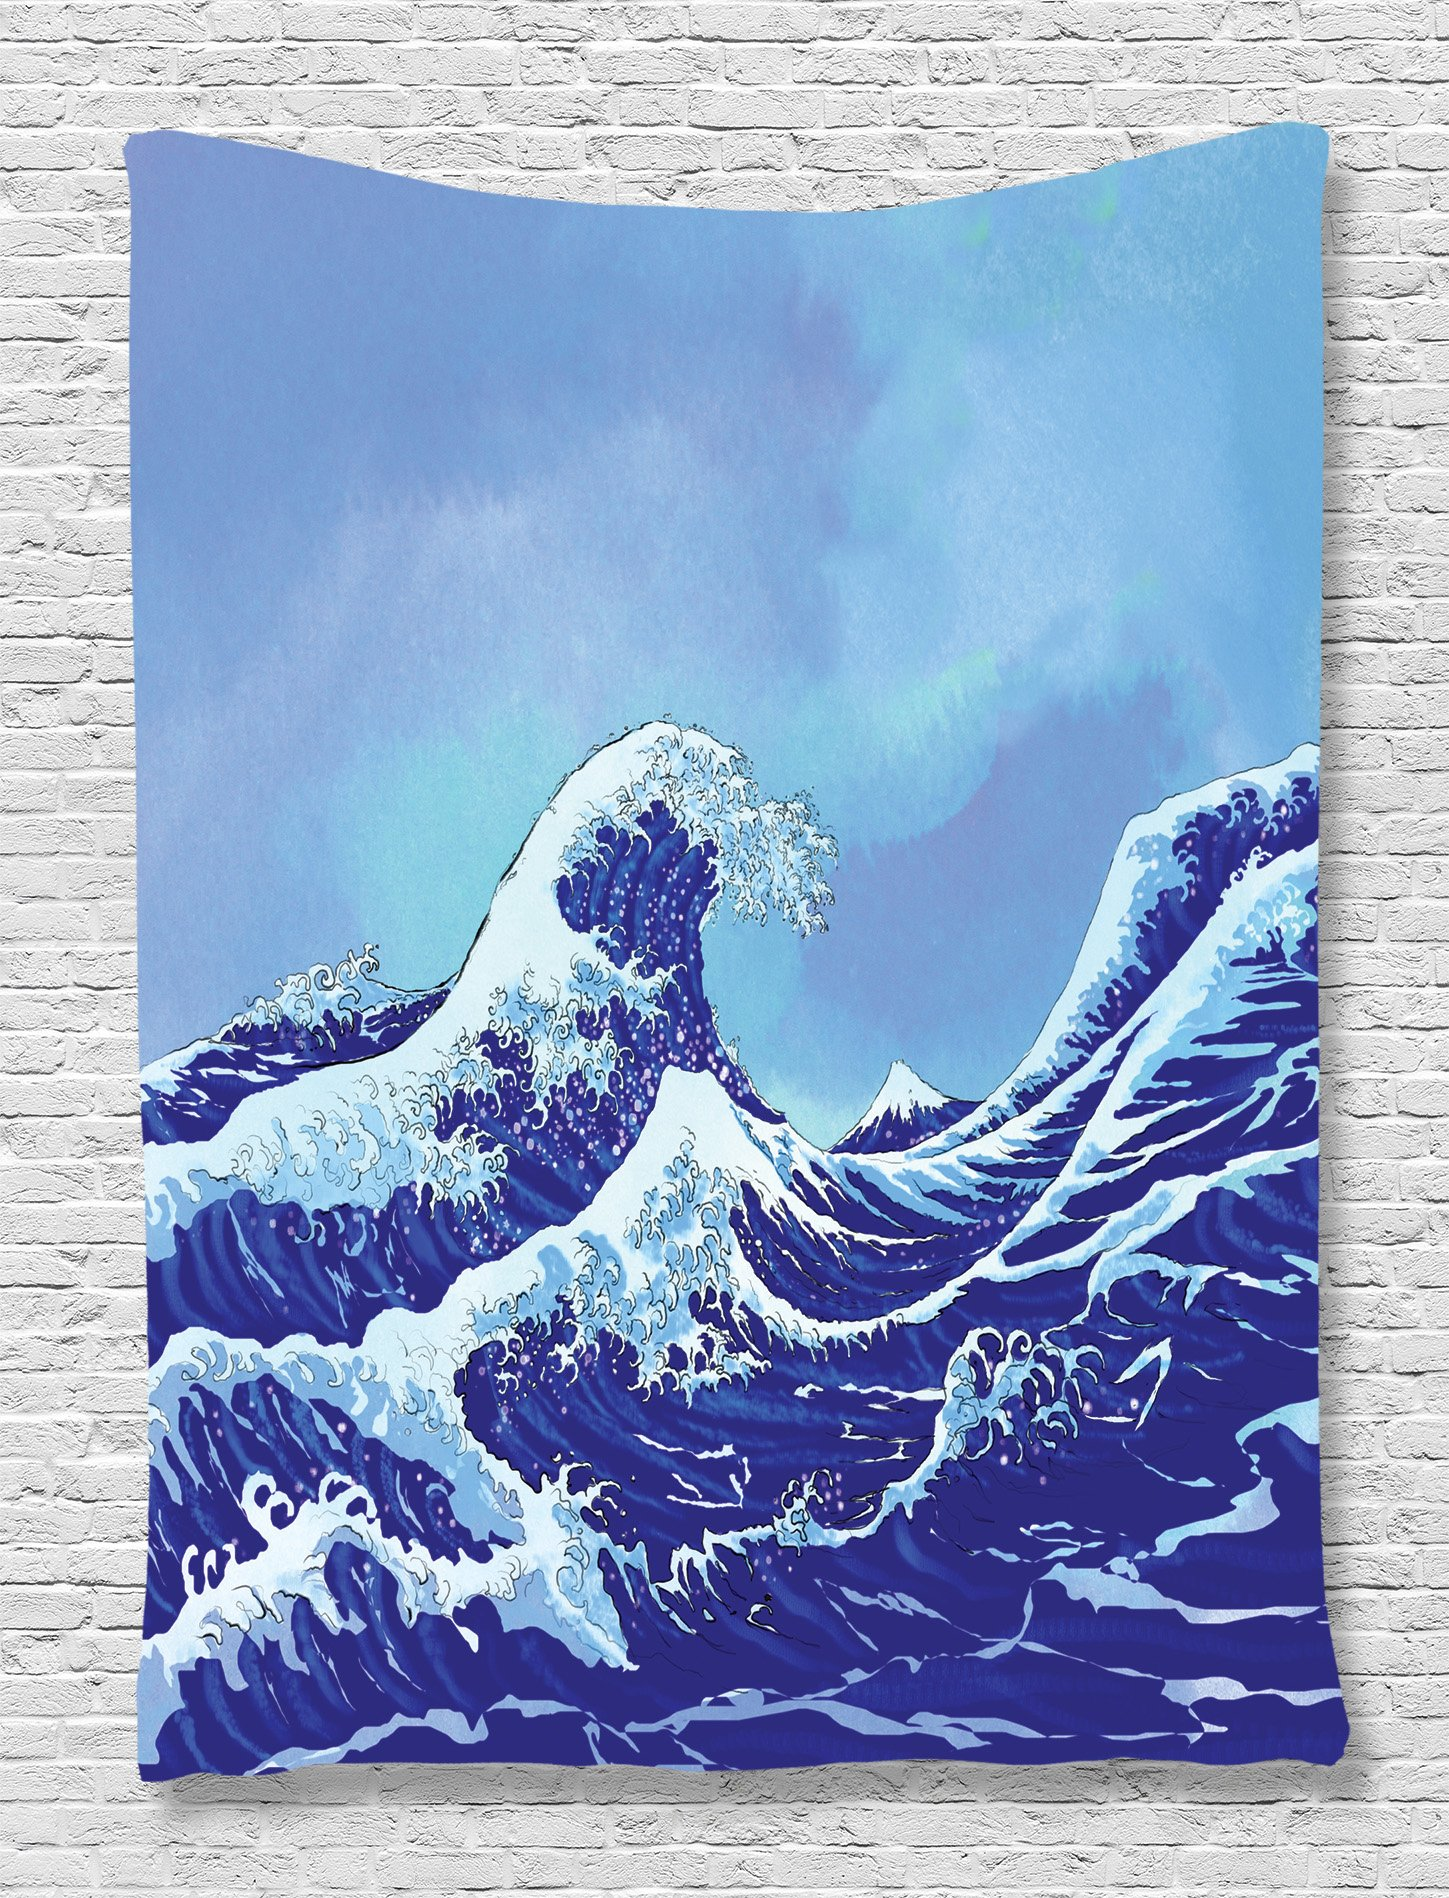 Ambesonne Ocean Tapestry Blue Decor by, The Great Waves of Kanagawa Big Tsunami Nautical Pattern, Bedroom Living Kids Room Dorm Accessories Art Wall Hanging, 40W x 60L Inches, Navy Royal Blue